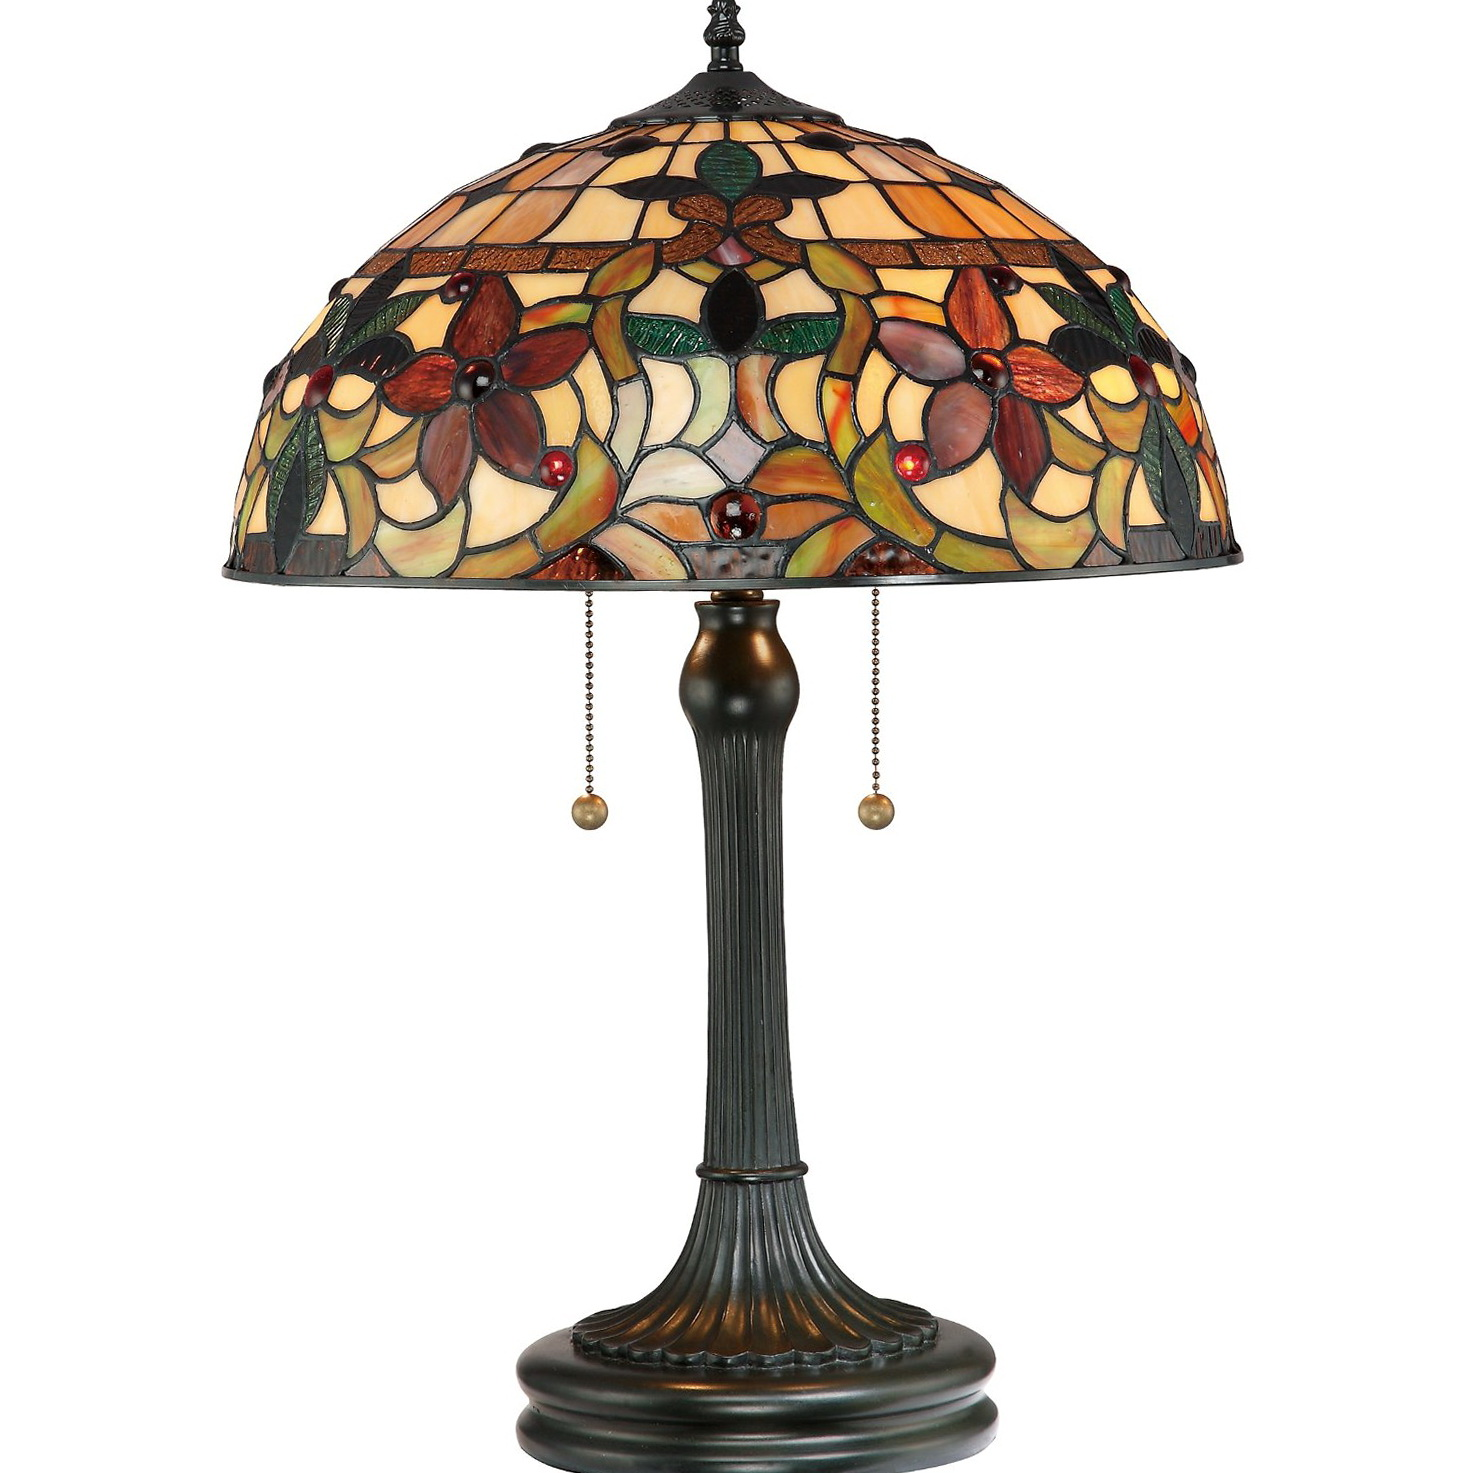 Antique Chandelier Table Lamp